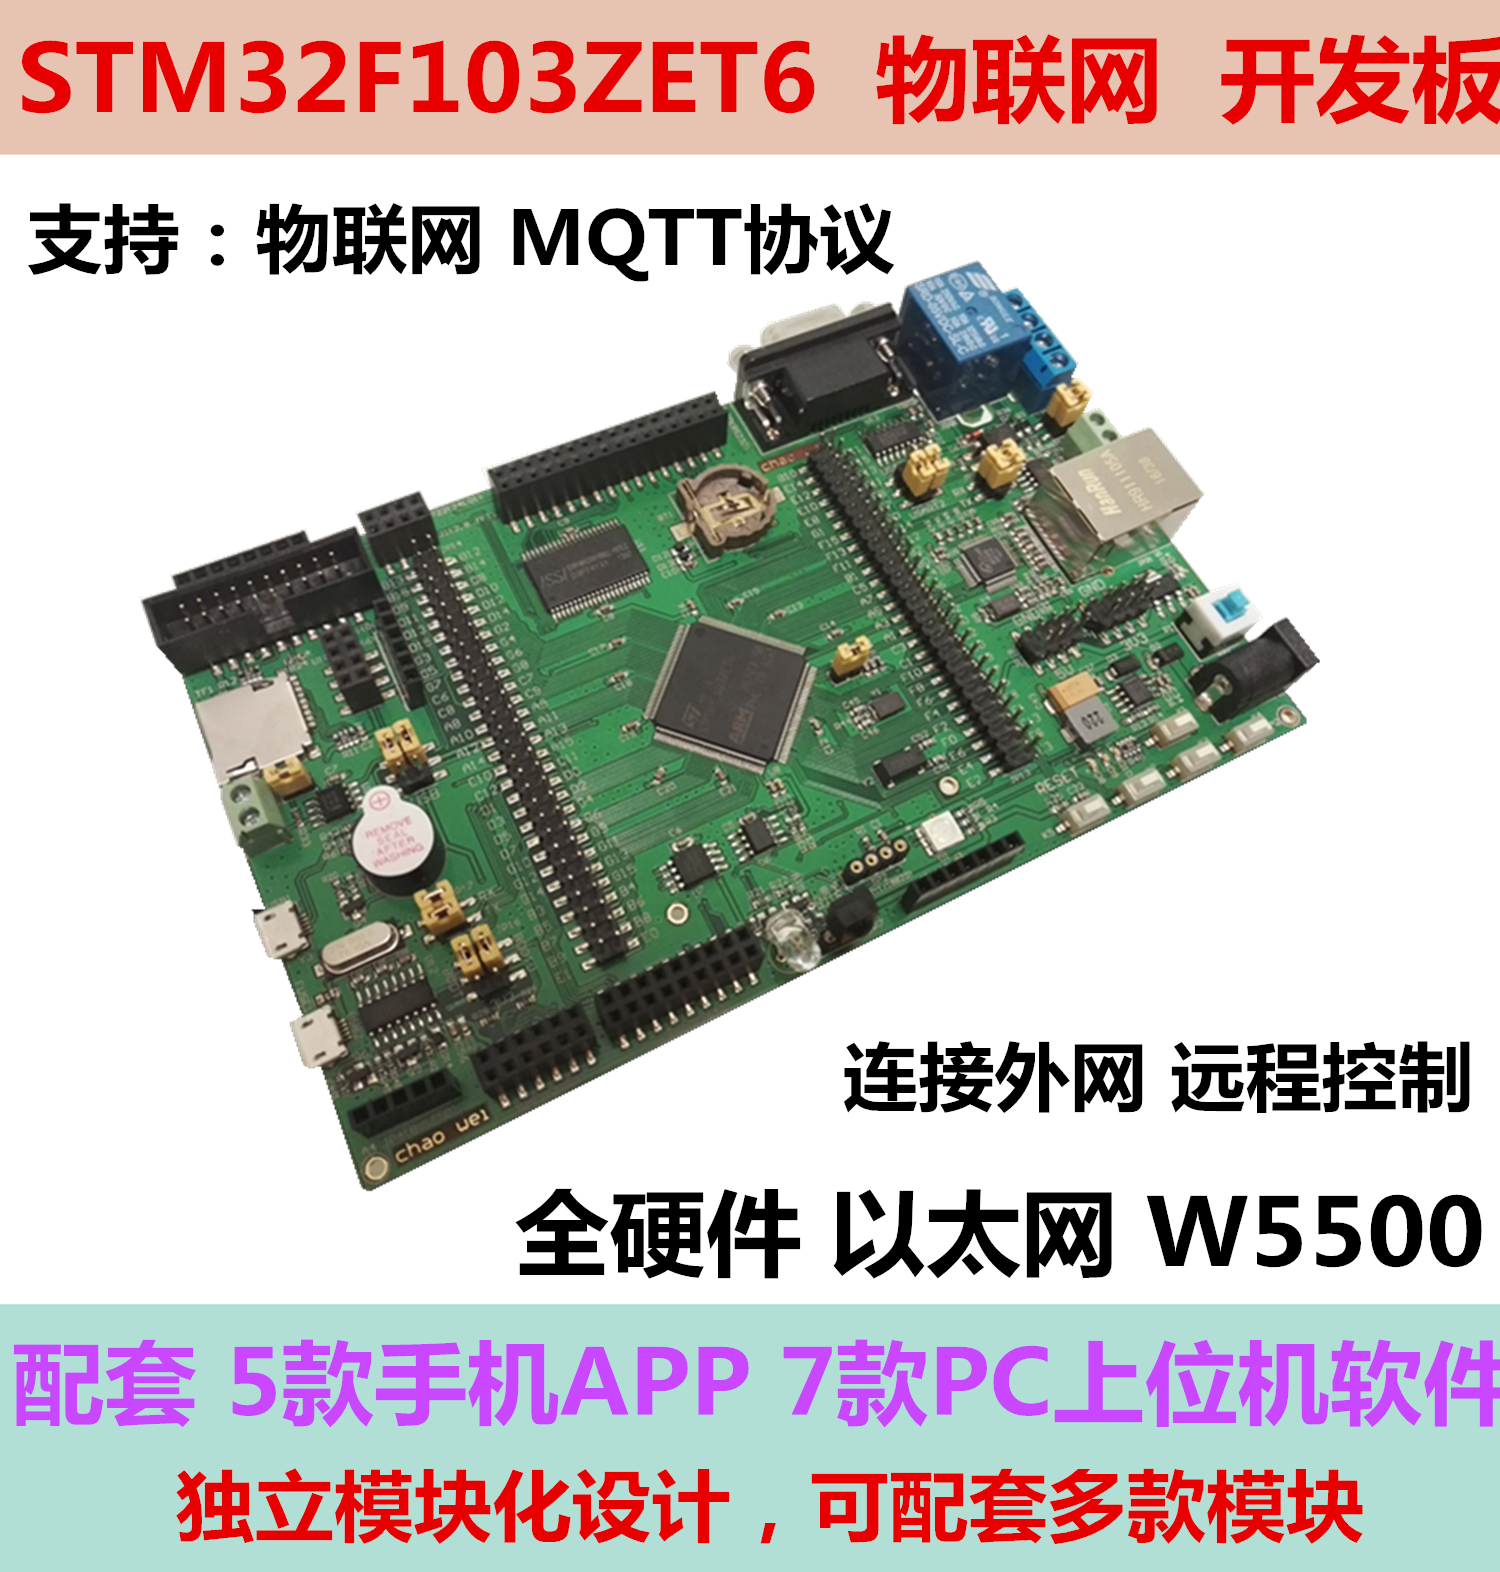 Internet of things MQTT stm32f103zet6 W5500 full hardware Ethernet development board APP PC lua wifi nodemcu internet of things development board based on cp2102 esp8266